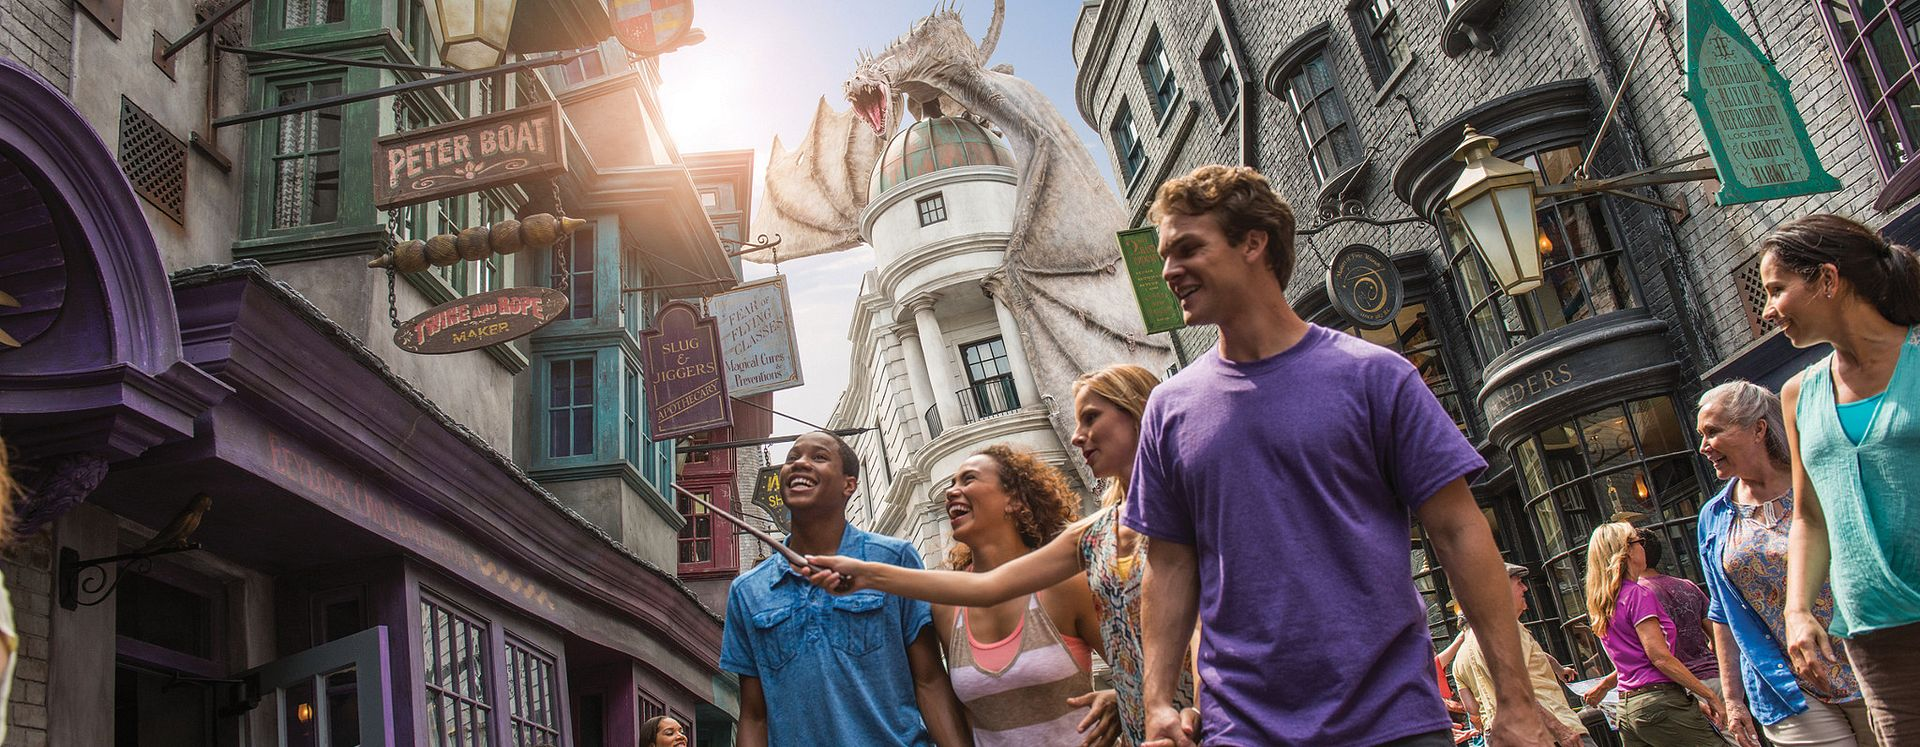 Four friends walking in Diagon Alley in The Wizarding World of Harry Potter with the dragon in the background